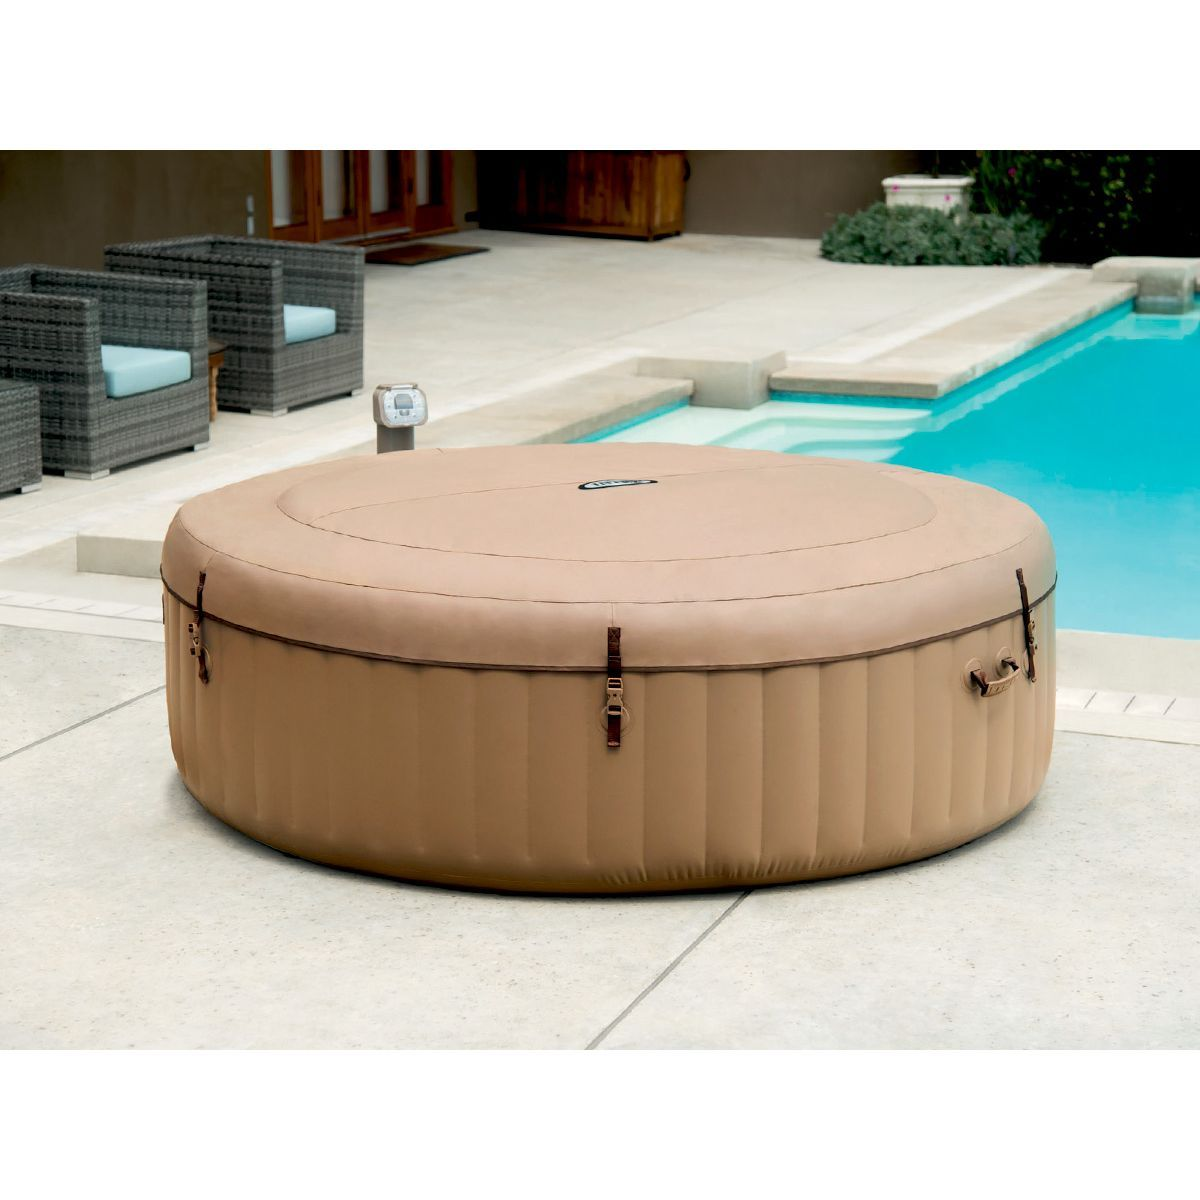 Spa Gonflable Purespa Rond Bulles 6 Places Intex Taille